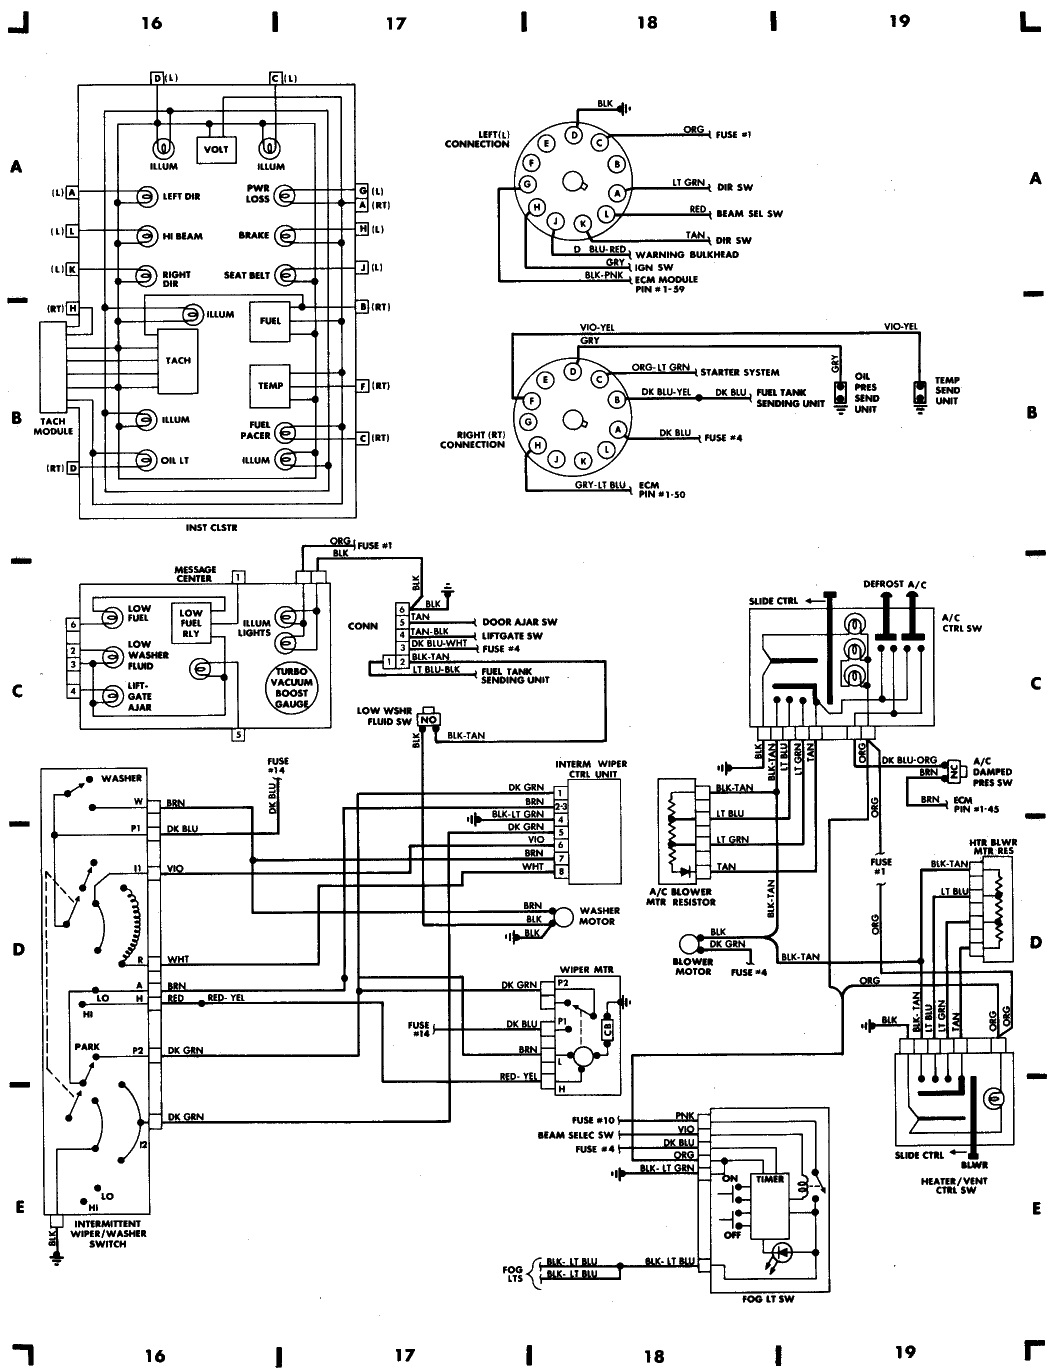 1984 dodge ramcharger fuse box dodge auto wiring diagram Dodge Charger Transformer 2006 Dodge Charger Fuse Map